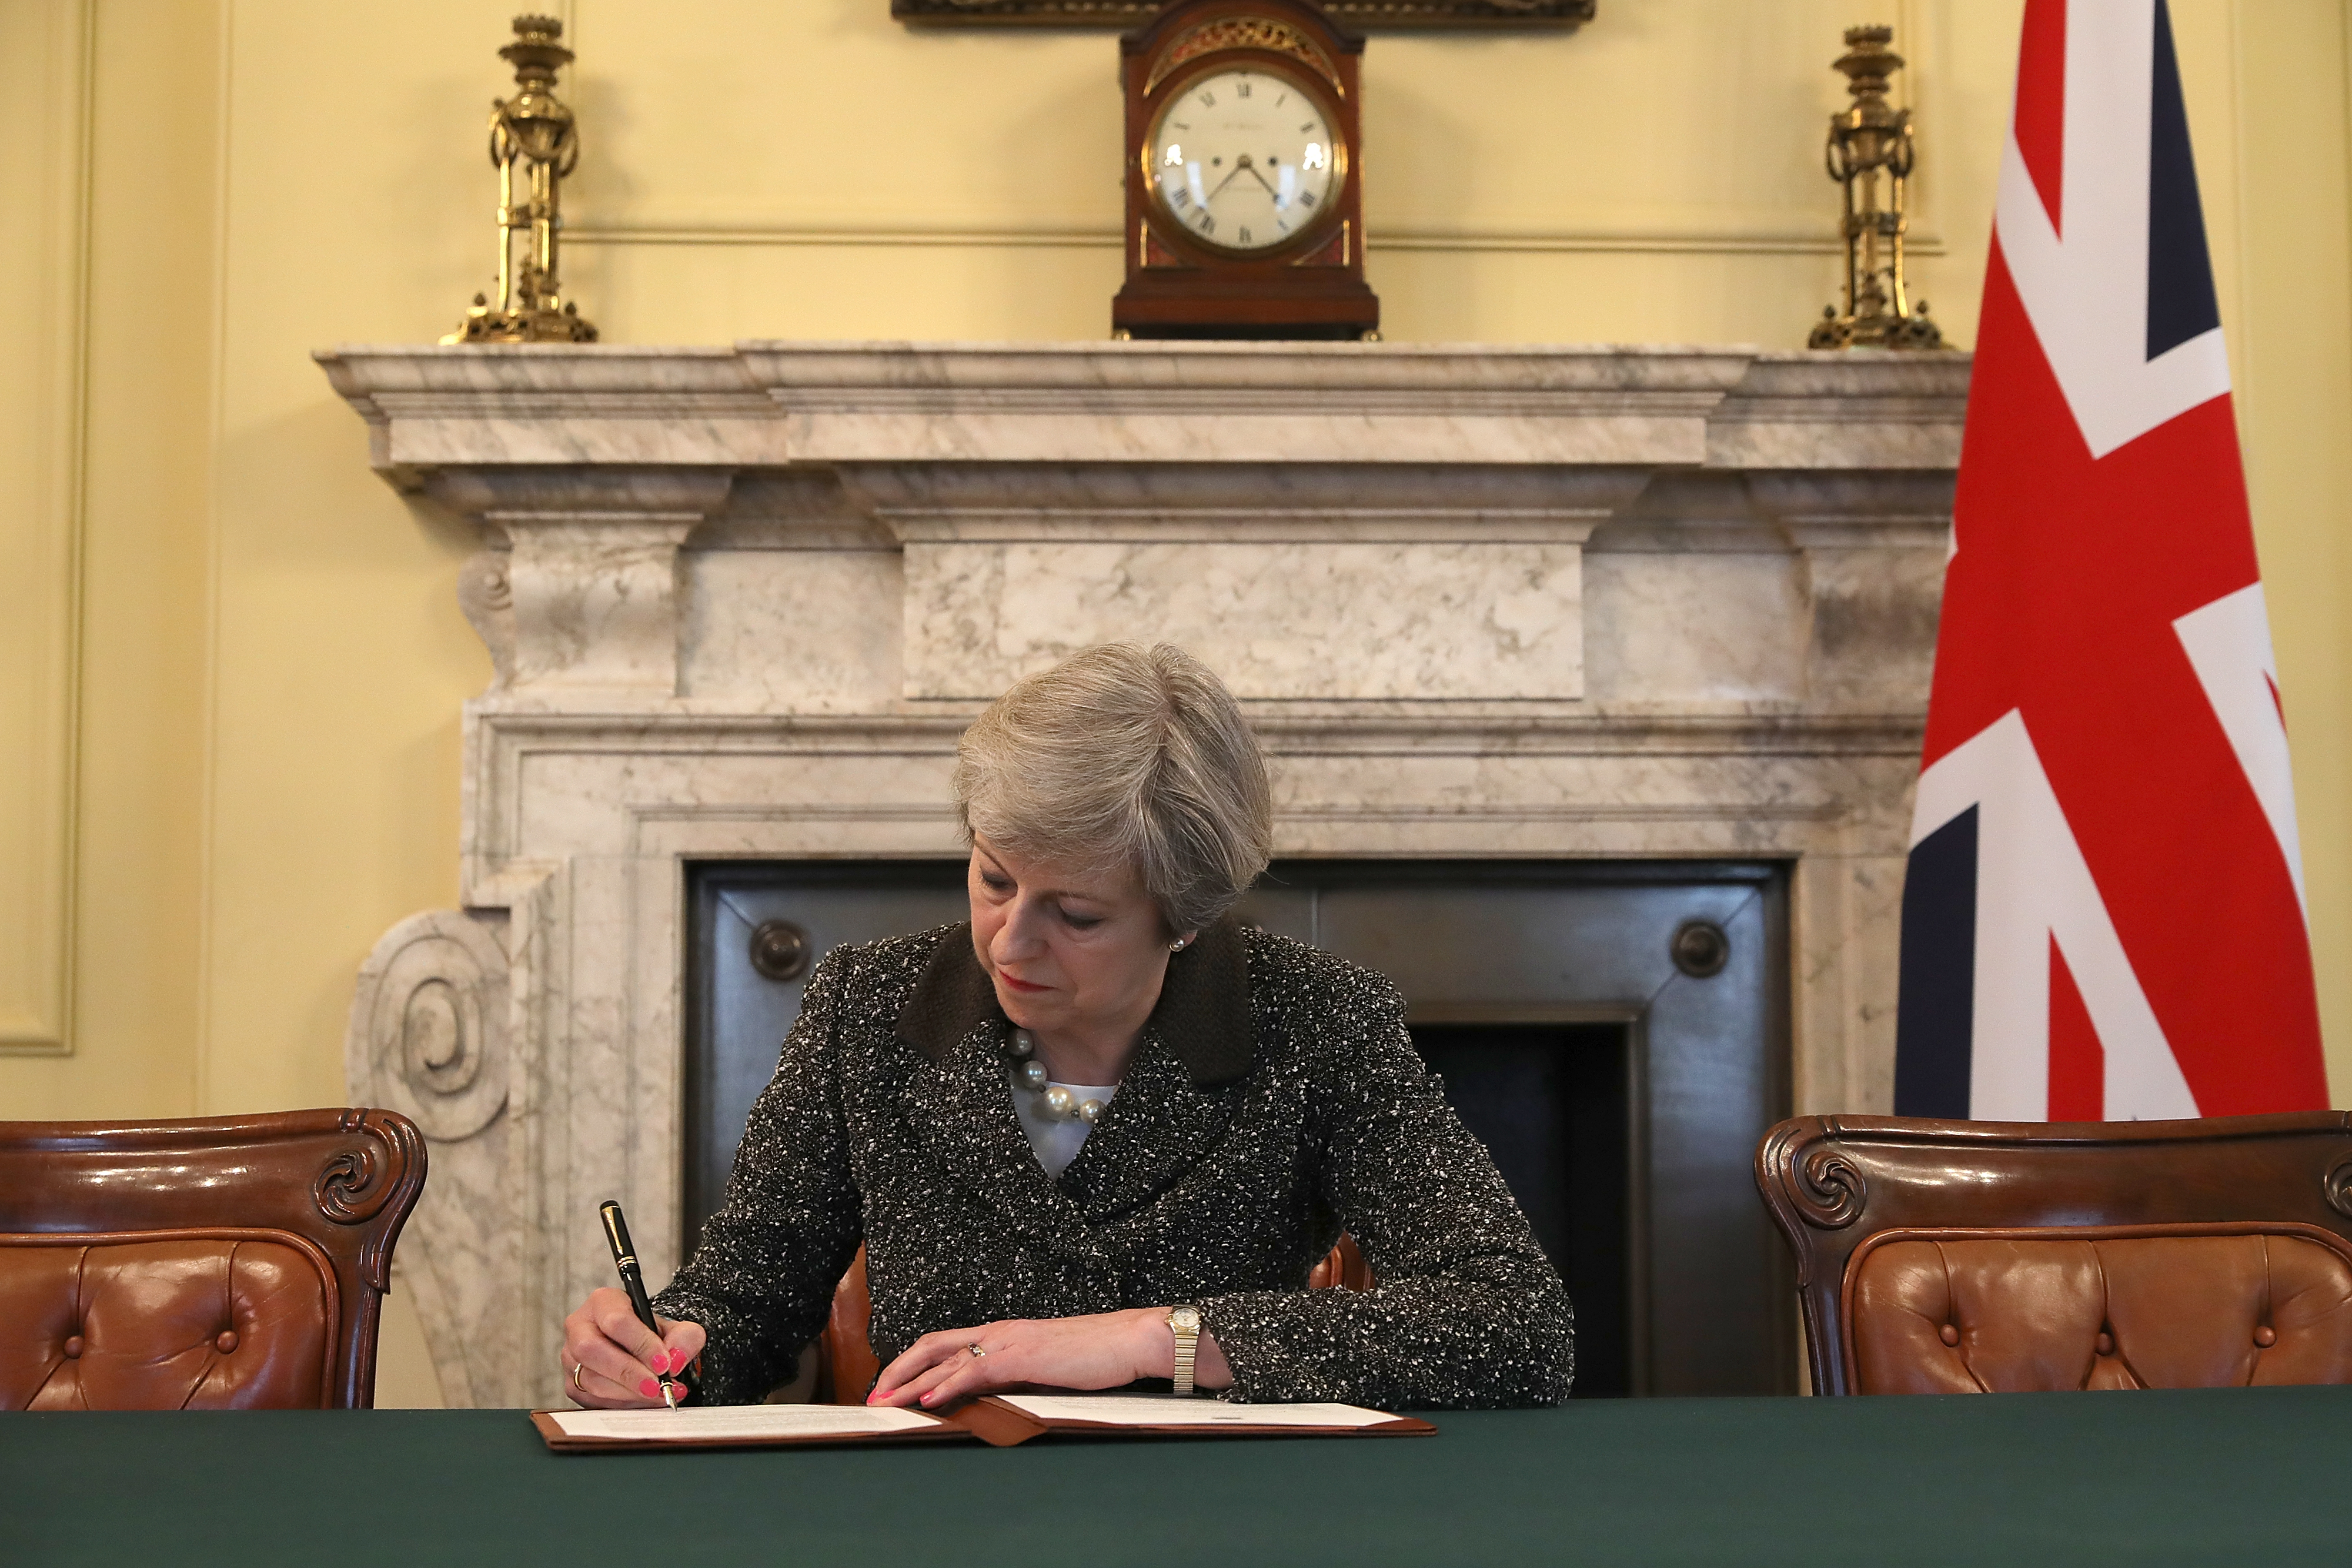 British Prime Minister Theresa May signs the official letter invoking Article 50 and the U.K.'s intention to leave the E.U. on March 28, 2017 in London.